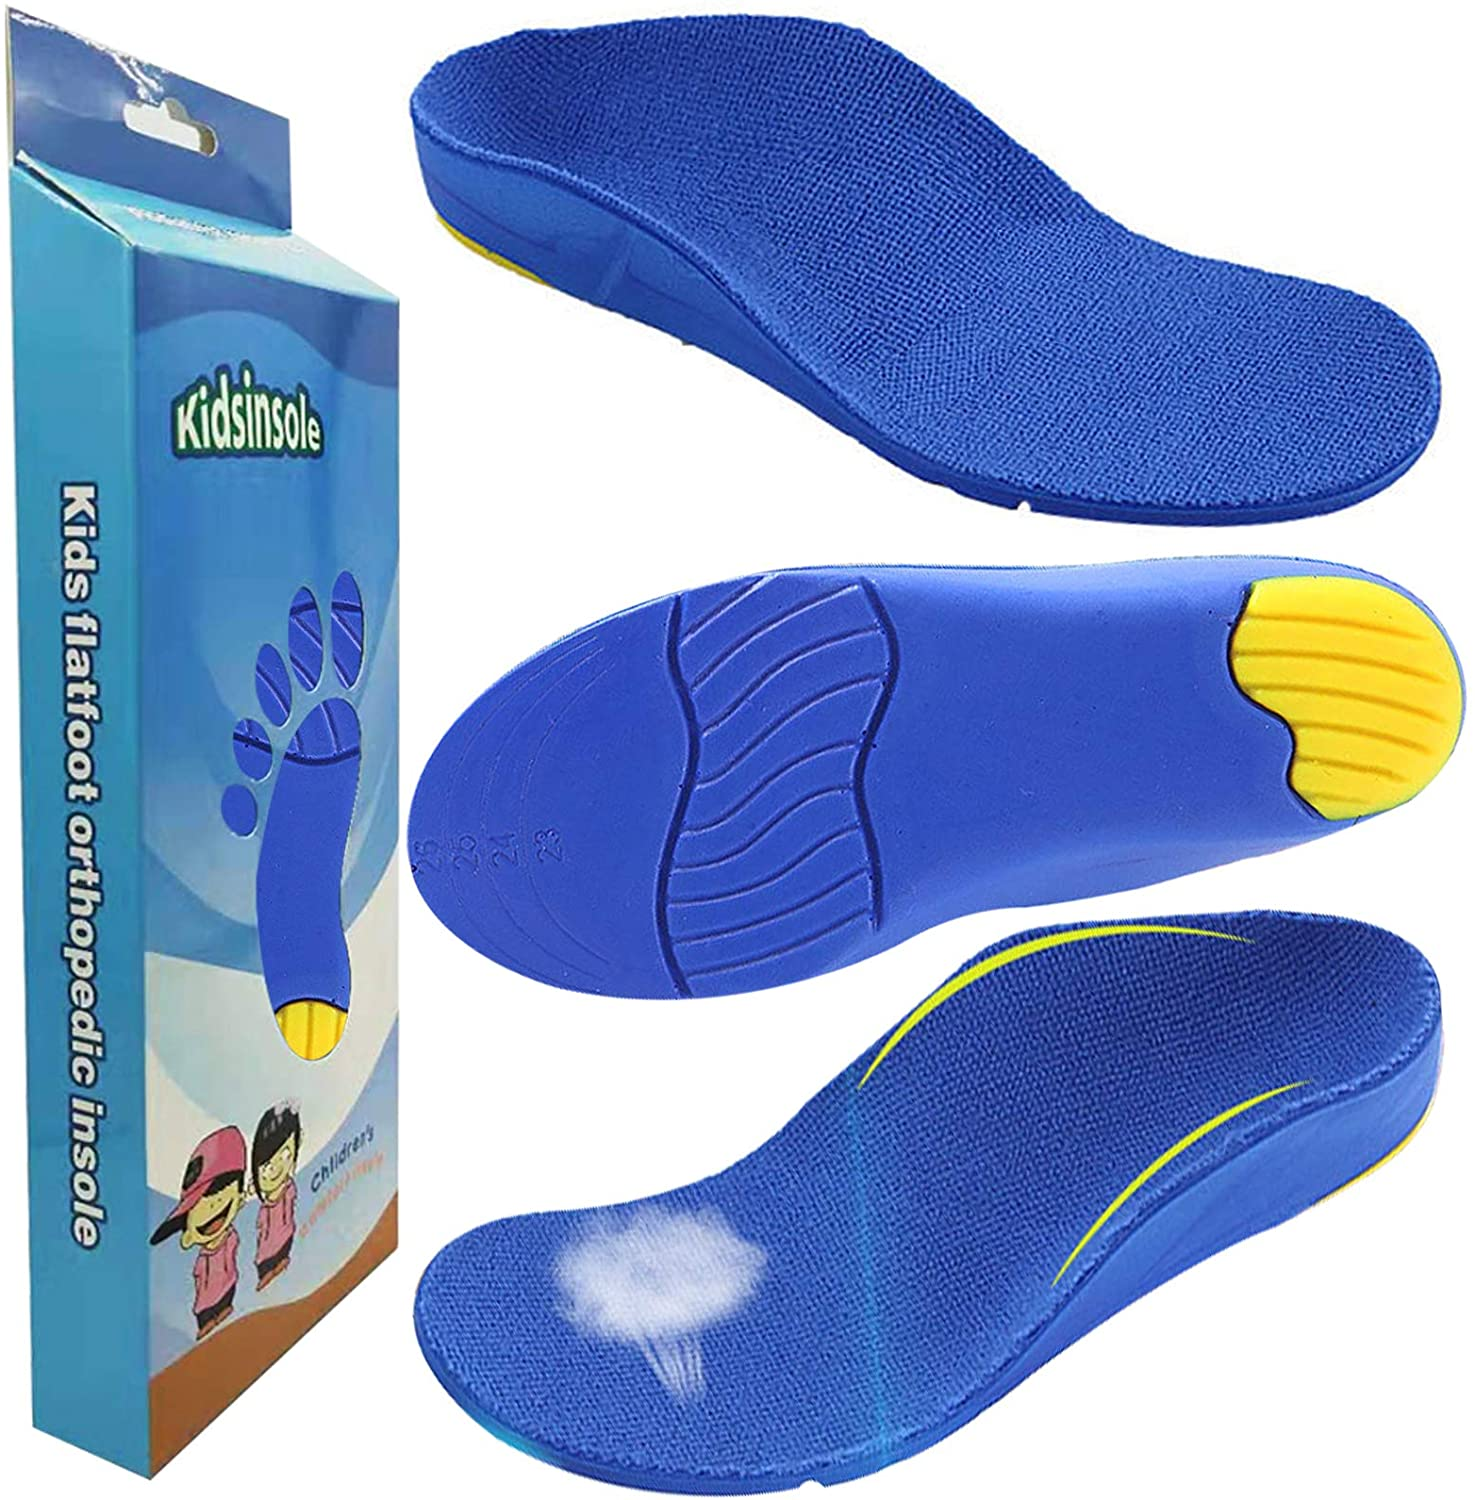 Bacophy Kids Arch Support Flat Feet Orthotic Inserts, Children PU Foam Cushioning Insoles for Plantar Fasciitis, Feet Heel Pain Relief